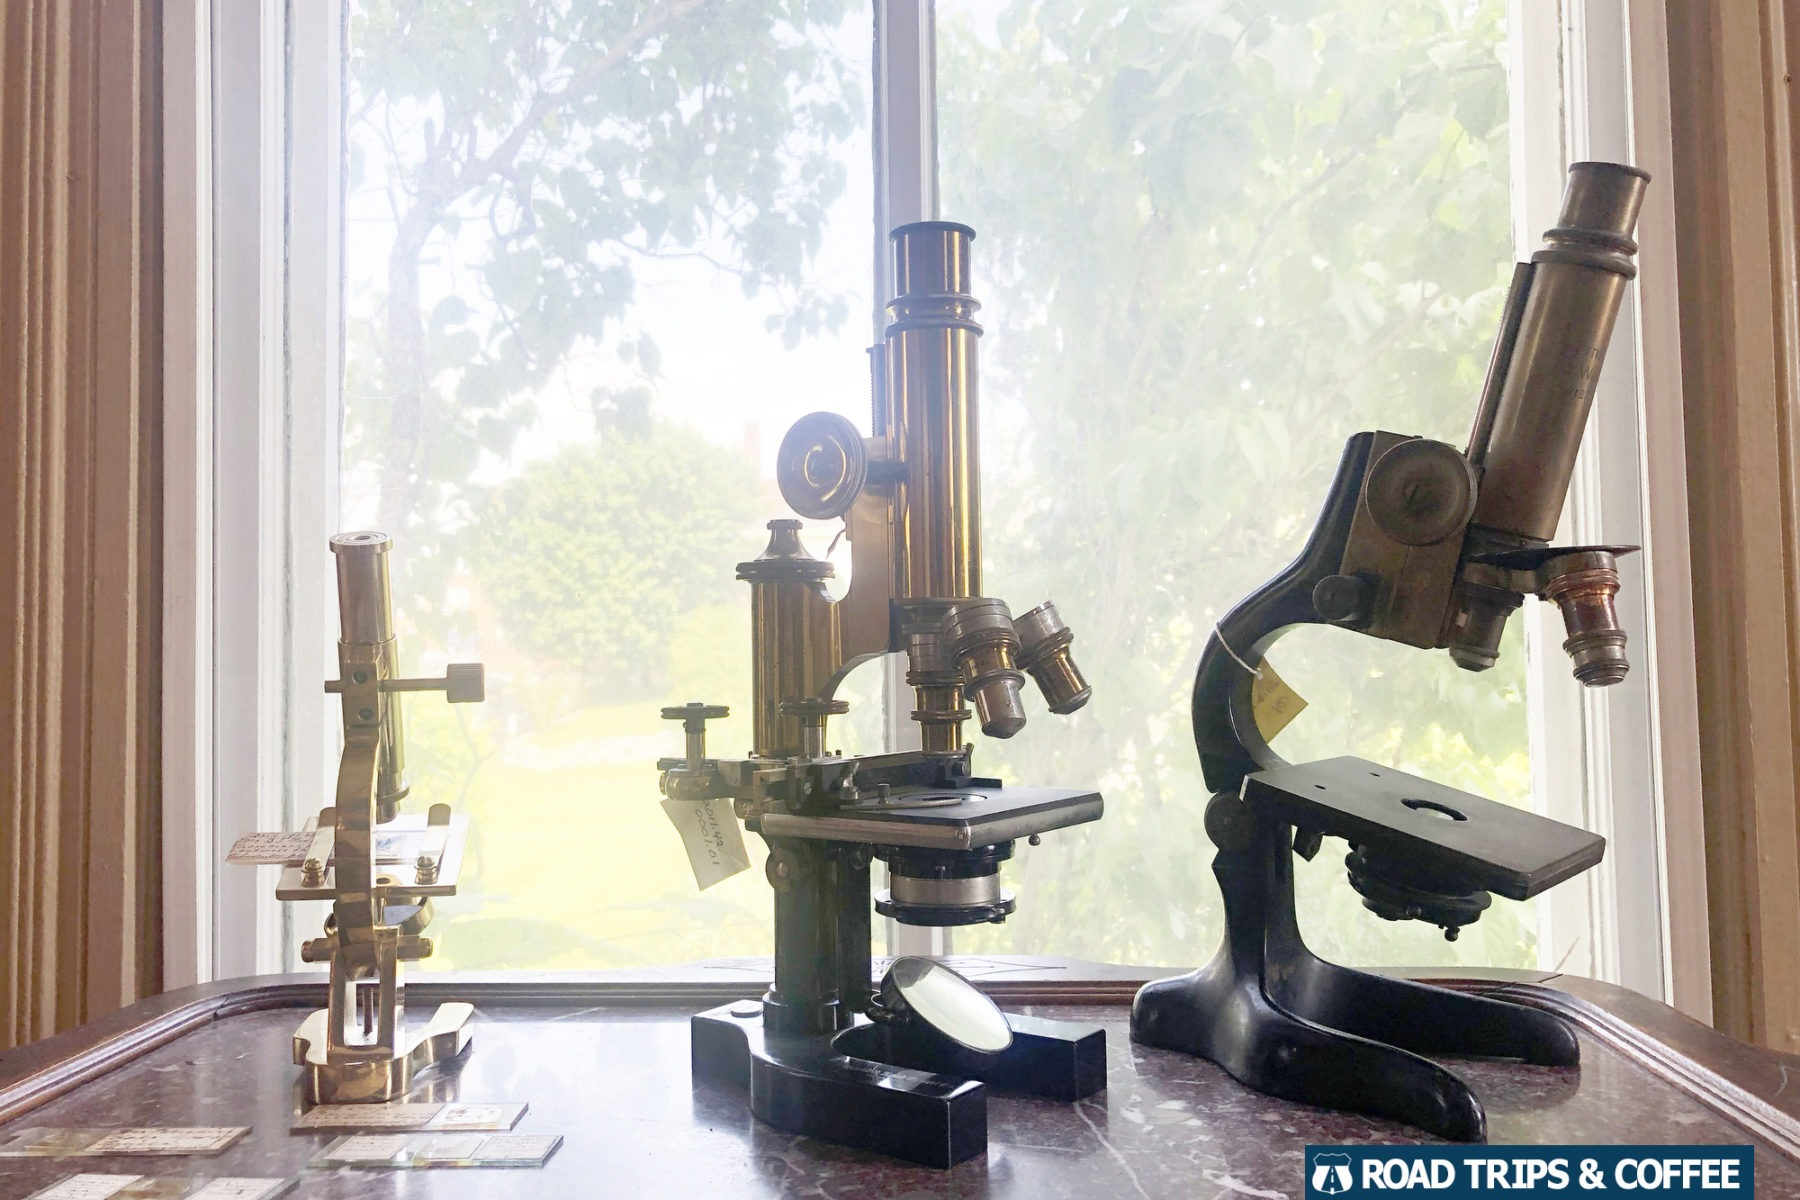 Collection of microscopes on display at the Haller-Gibboney Rock House Museum in Wytheville, Virginia